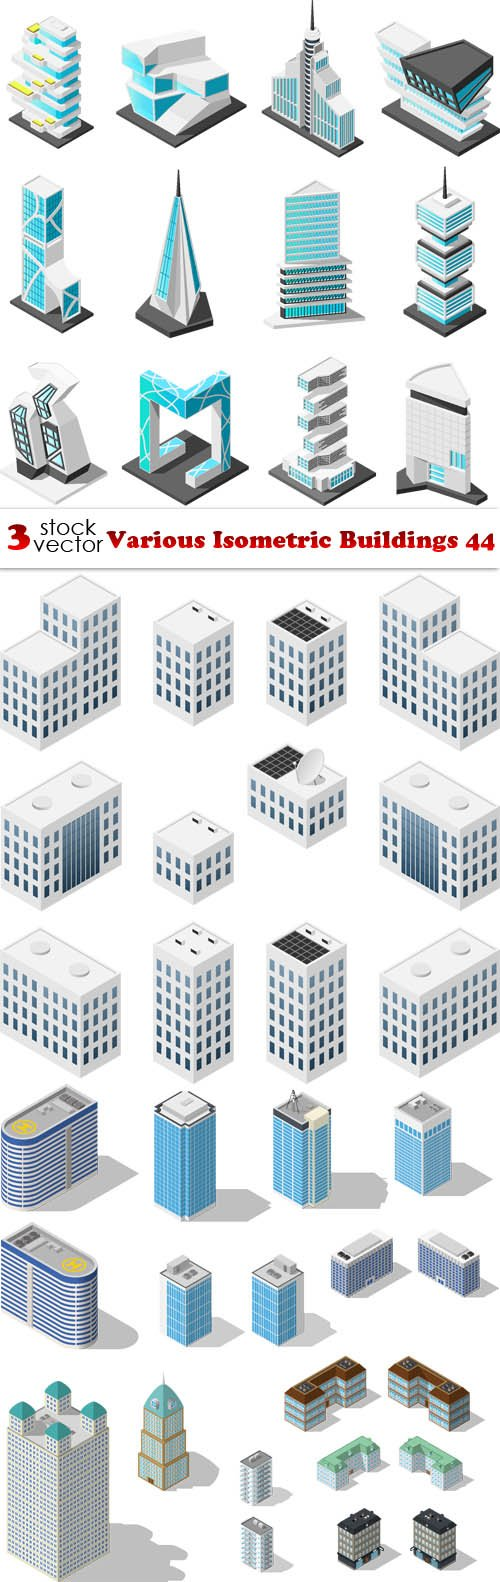 Vectors - Various Isometric Buildings 44